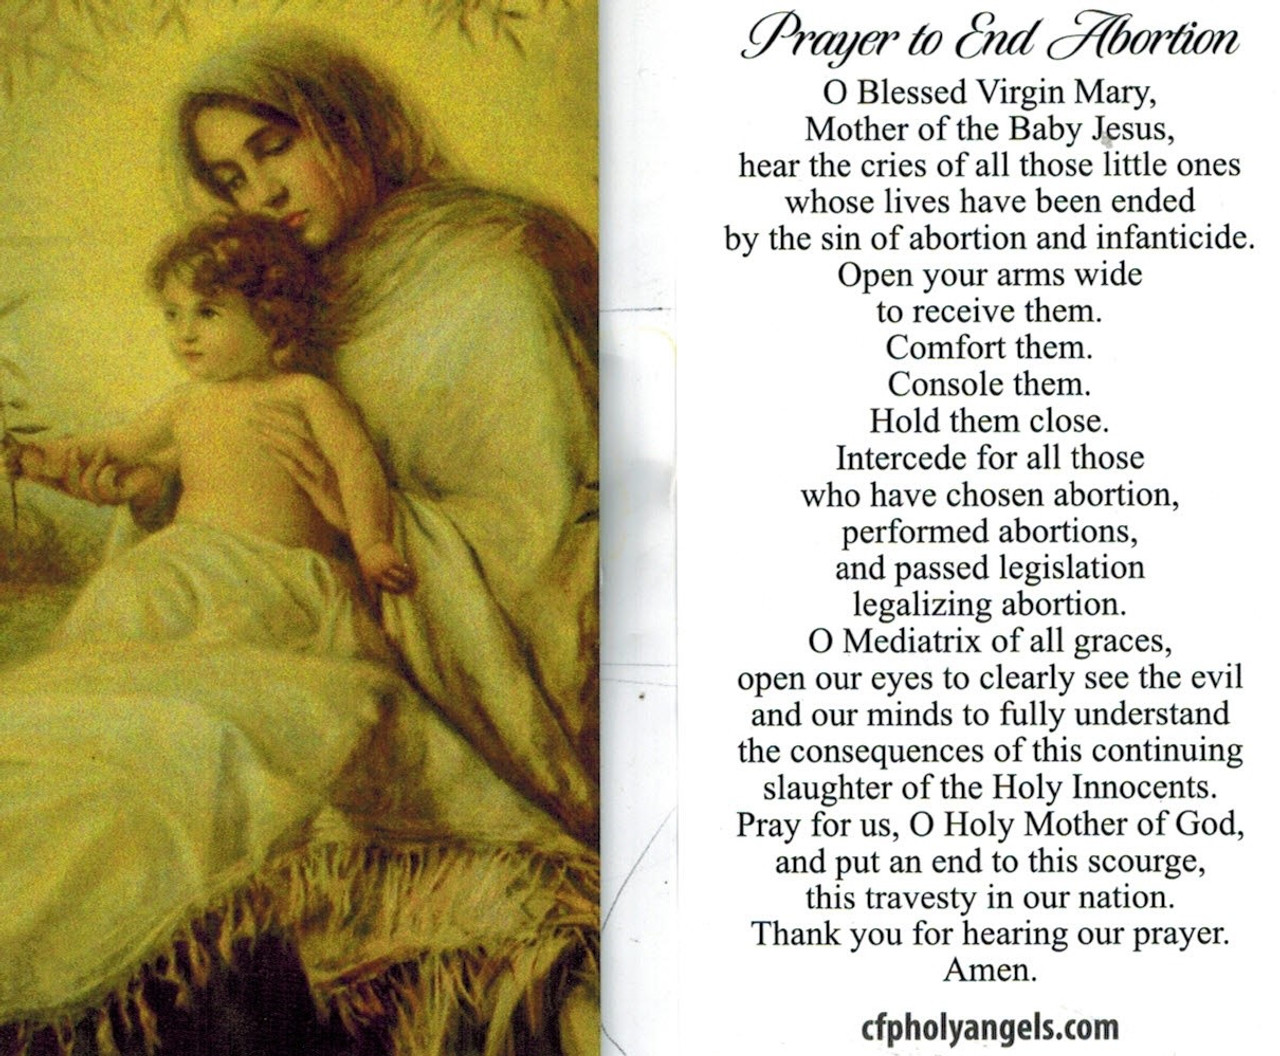 Prayer to End Abortion asking intercession of Blessed Mother Mary